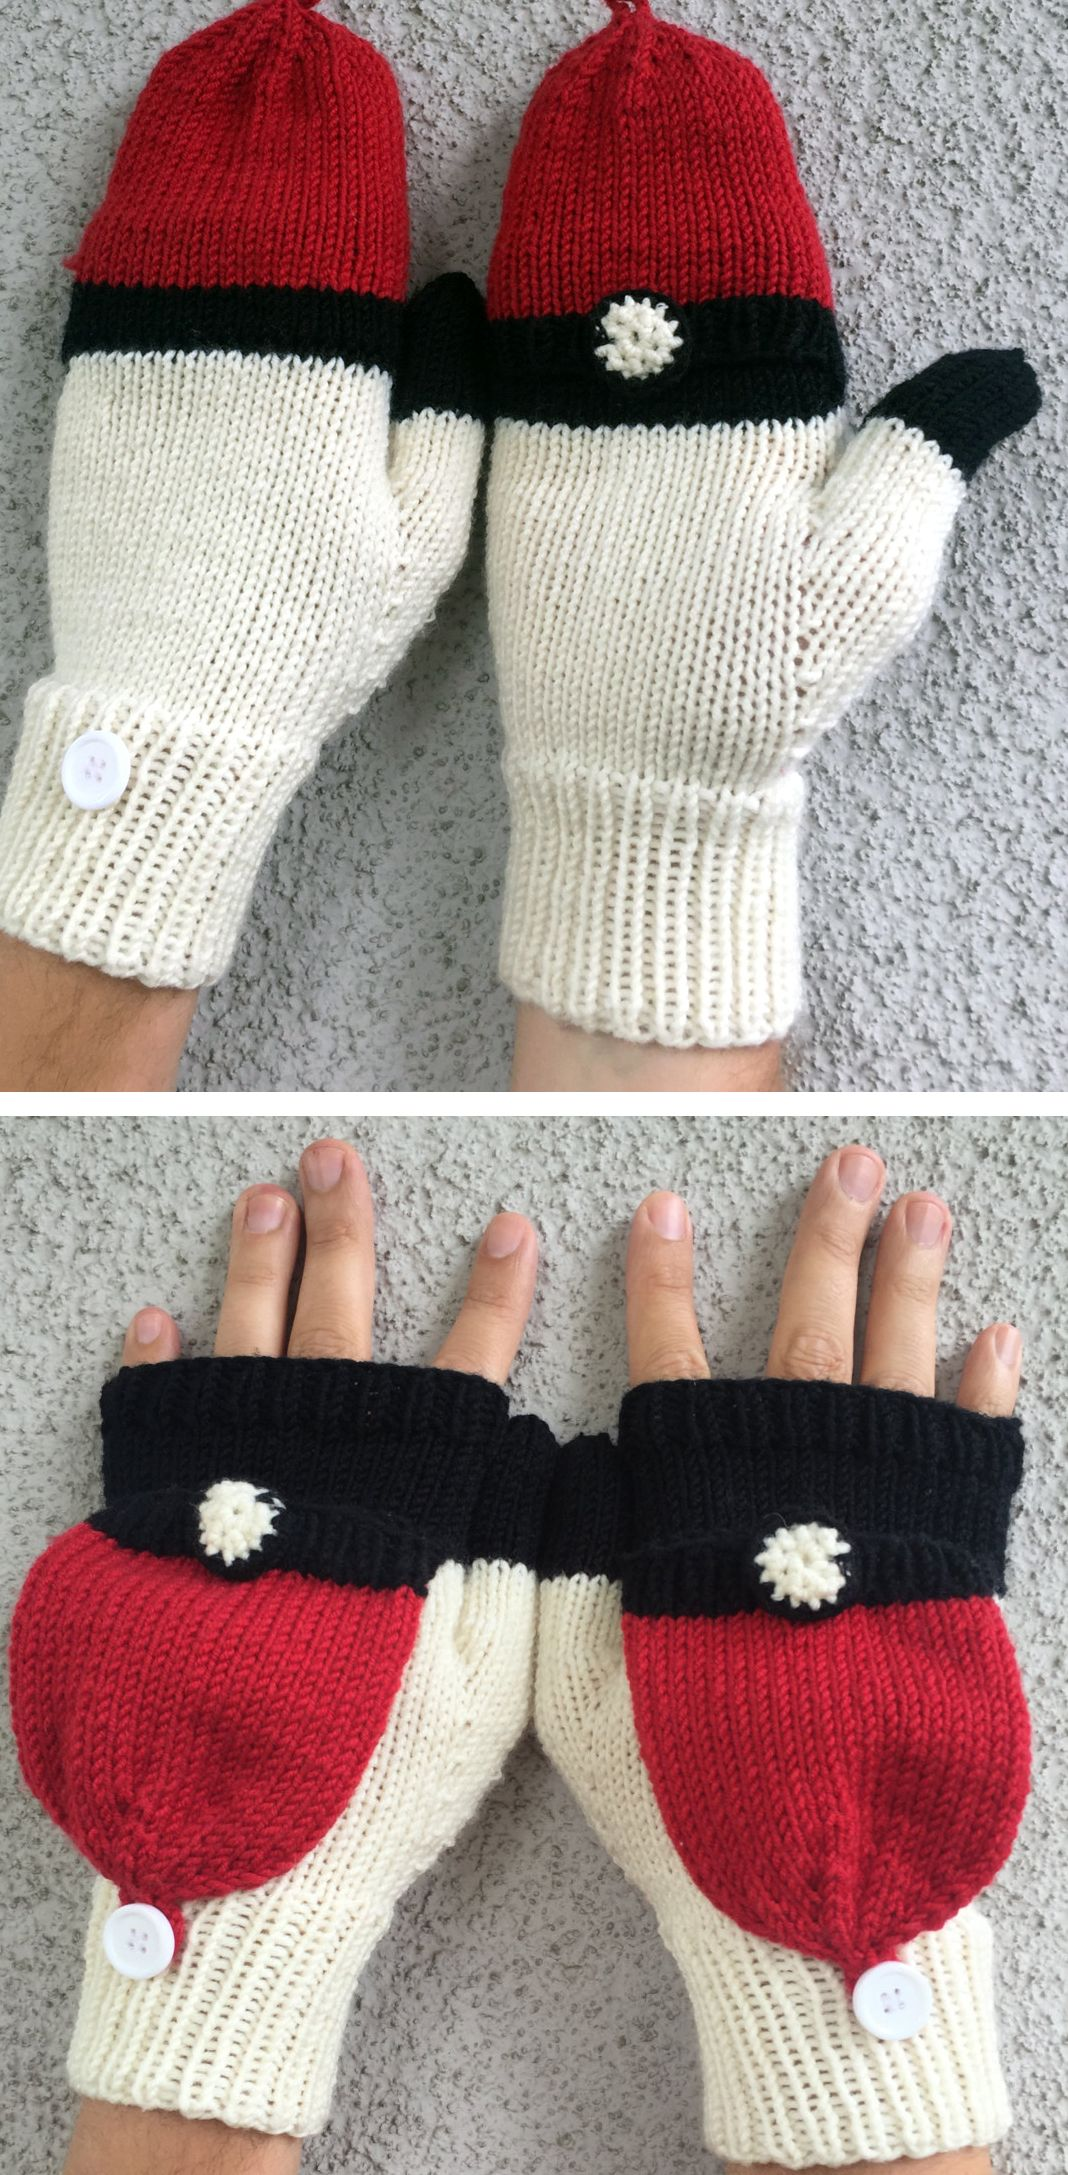 Gaming Knitting Patterns | Pinterest | Handschuh und Stricken